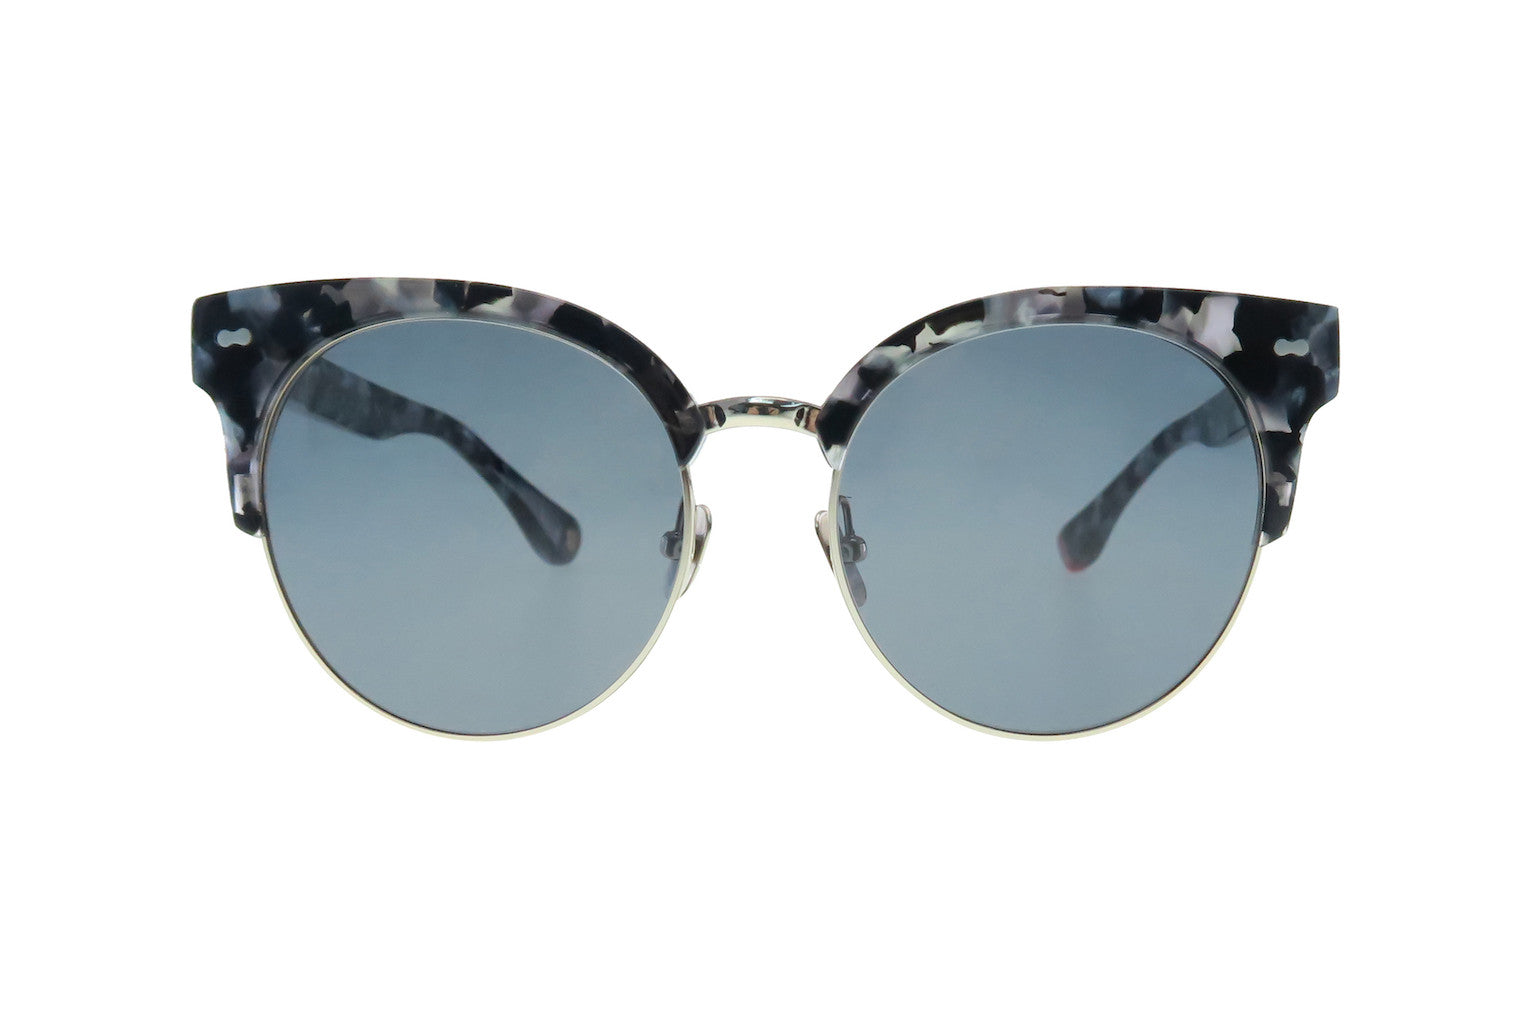 Pico 927 - Peppertint - Designer sunglasses